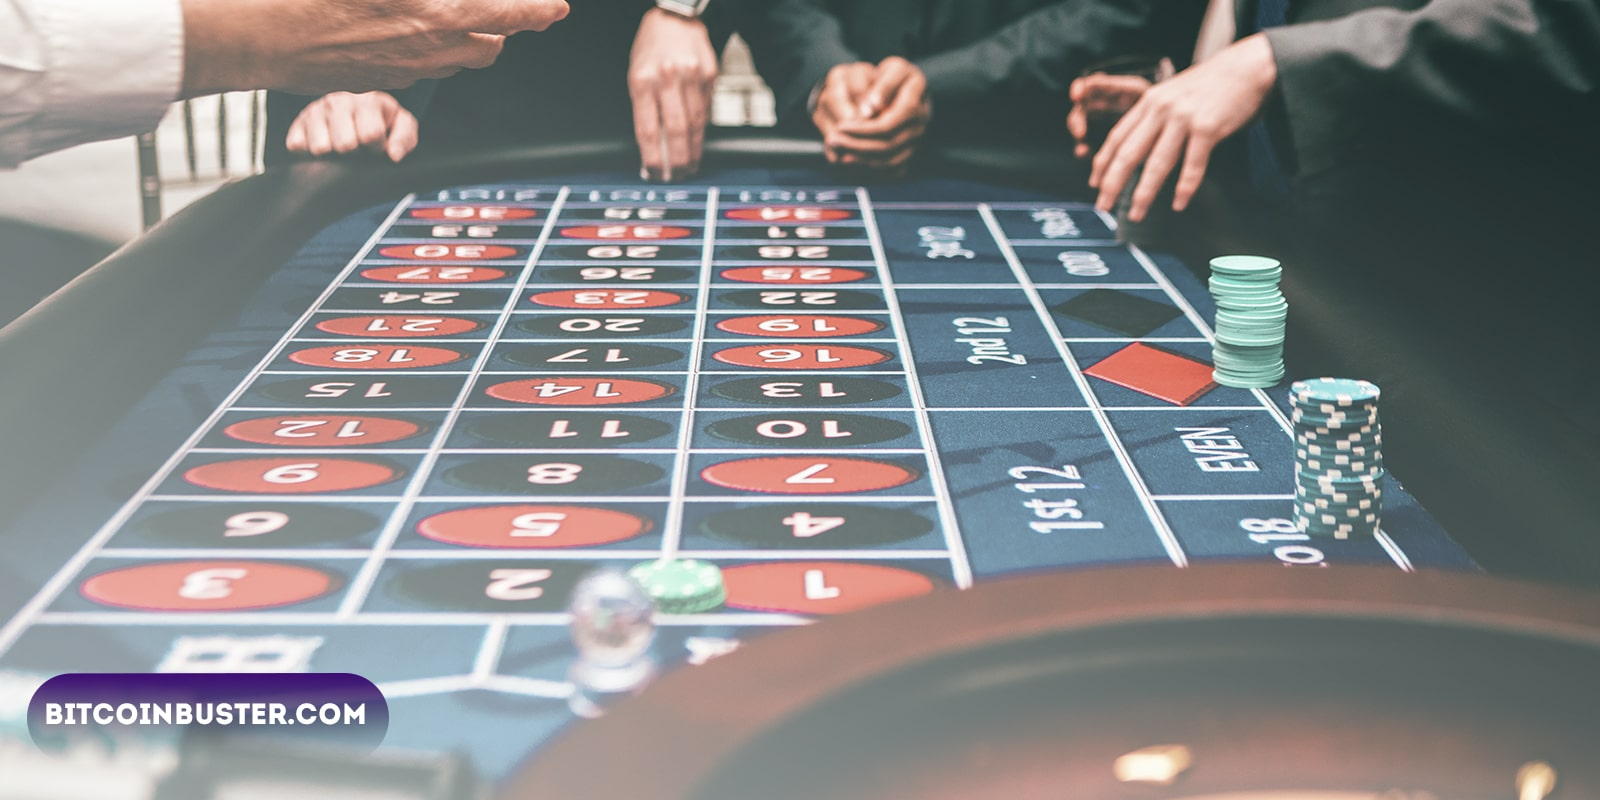 Several Land Based Casinos Looking to Accept Bitcoin for Slot Machines